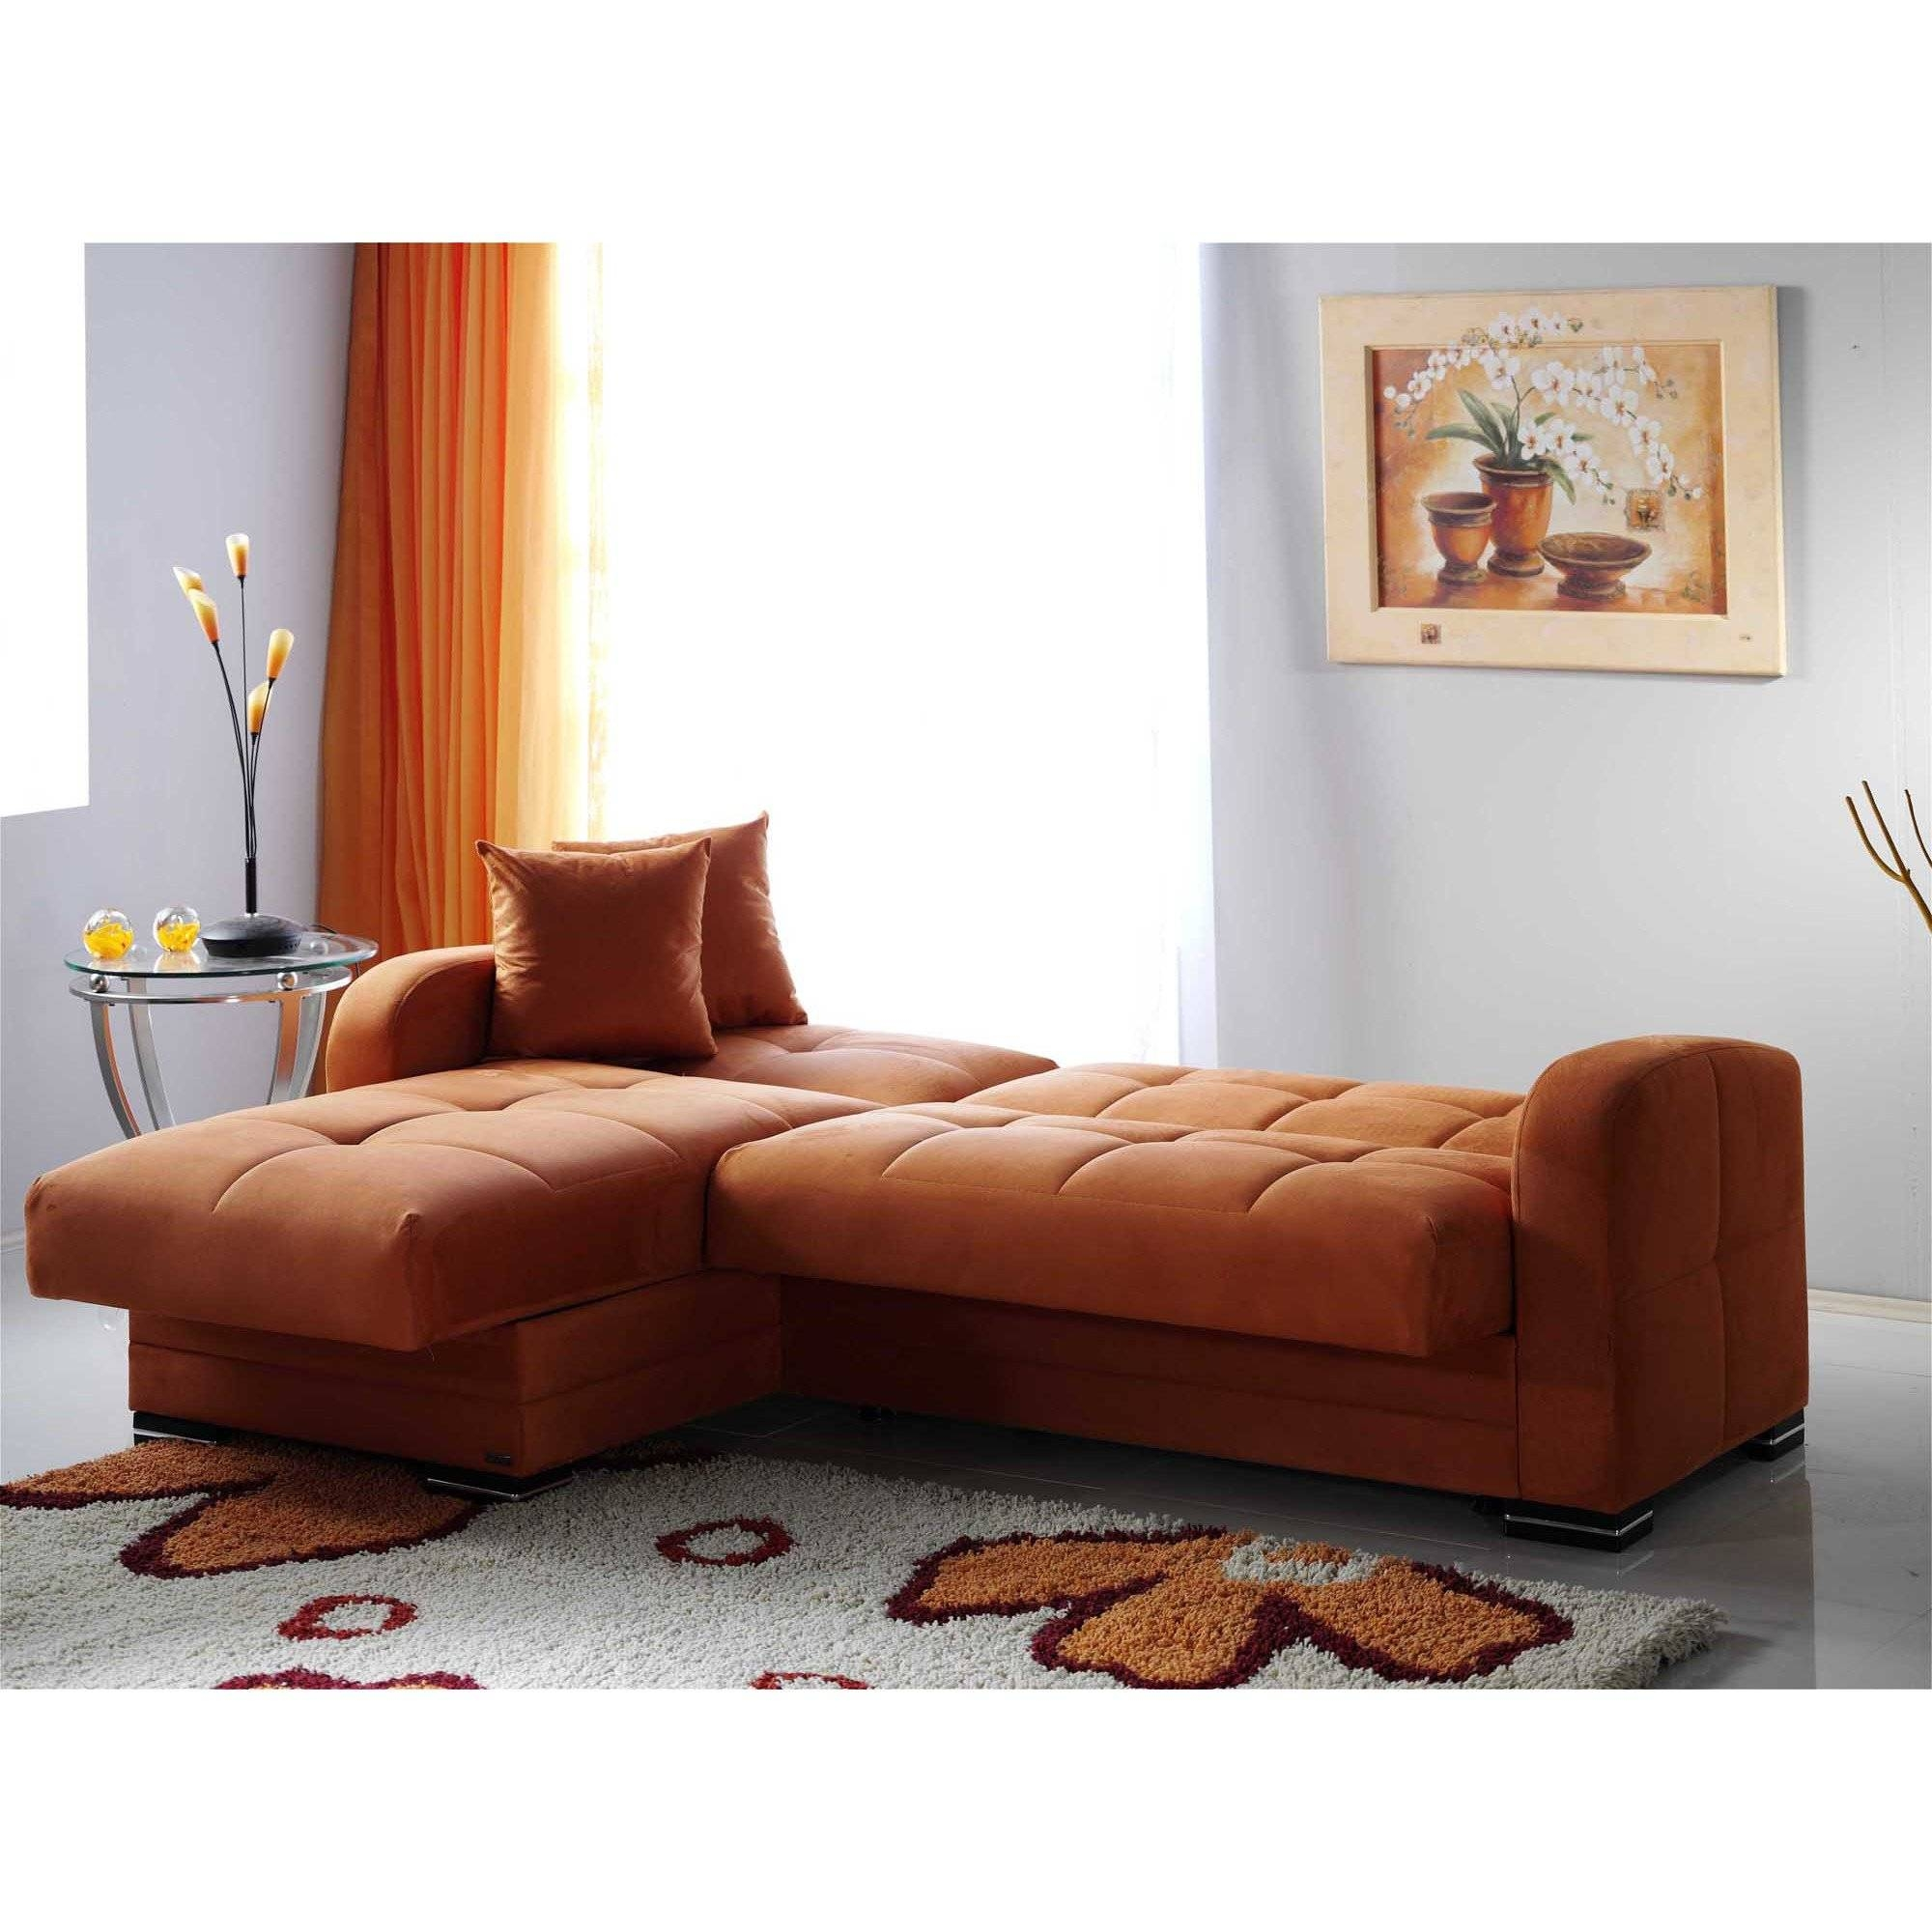 Kubo Rainbow Orange Sectional Sofasunset with Orange Sectional Sofa (Image 23 of 30)